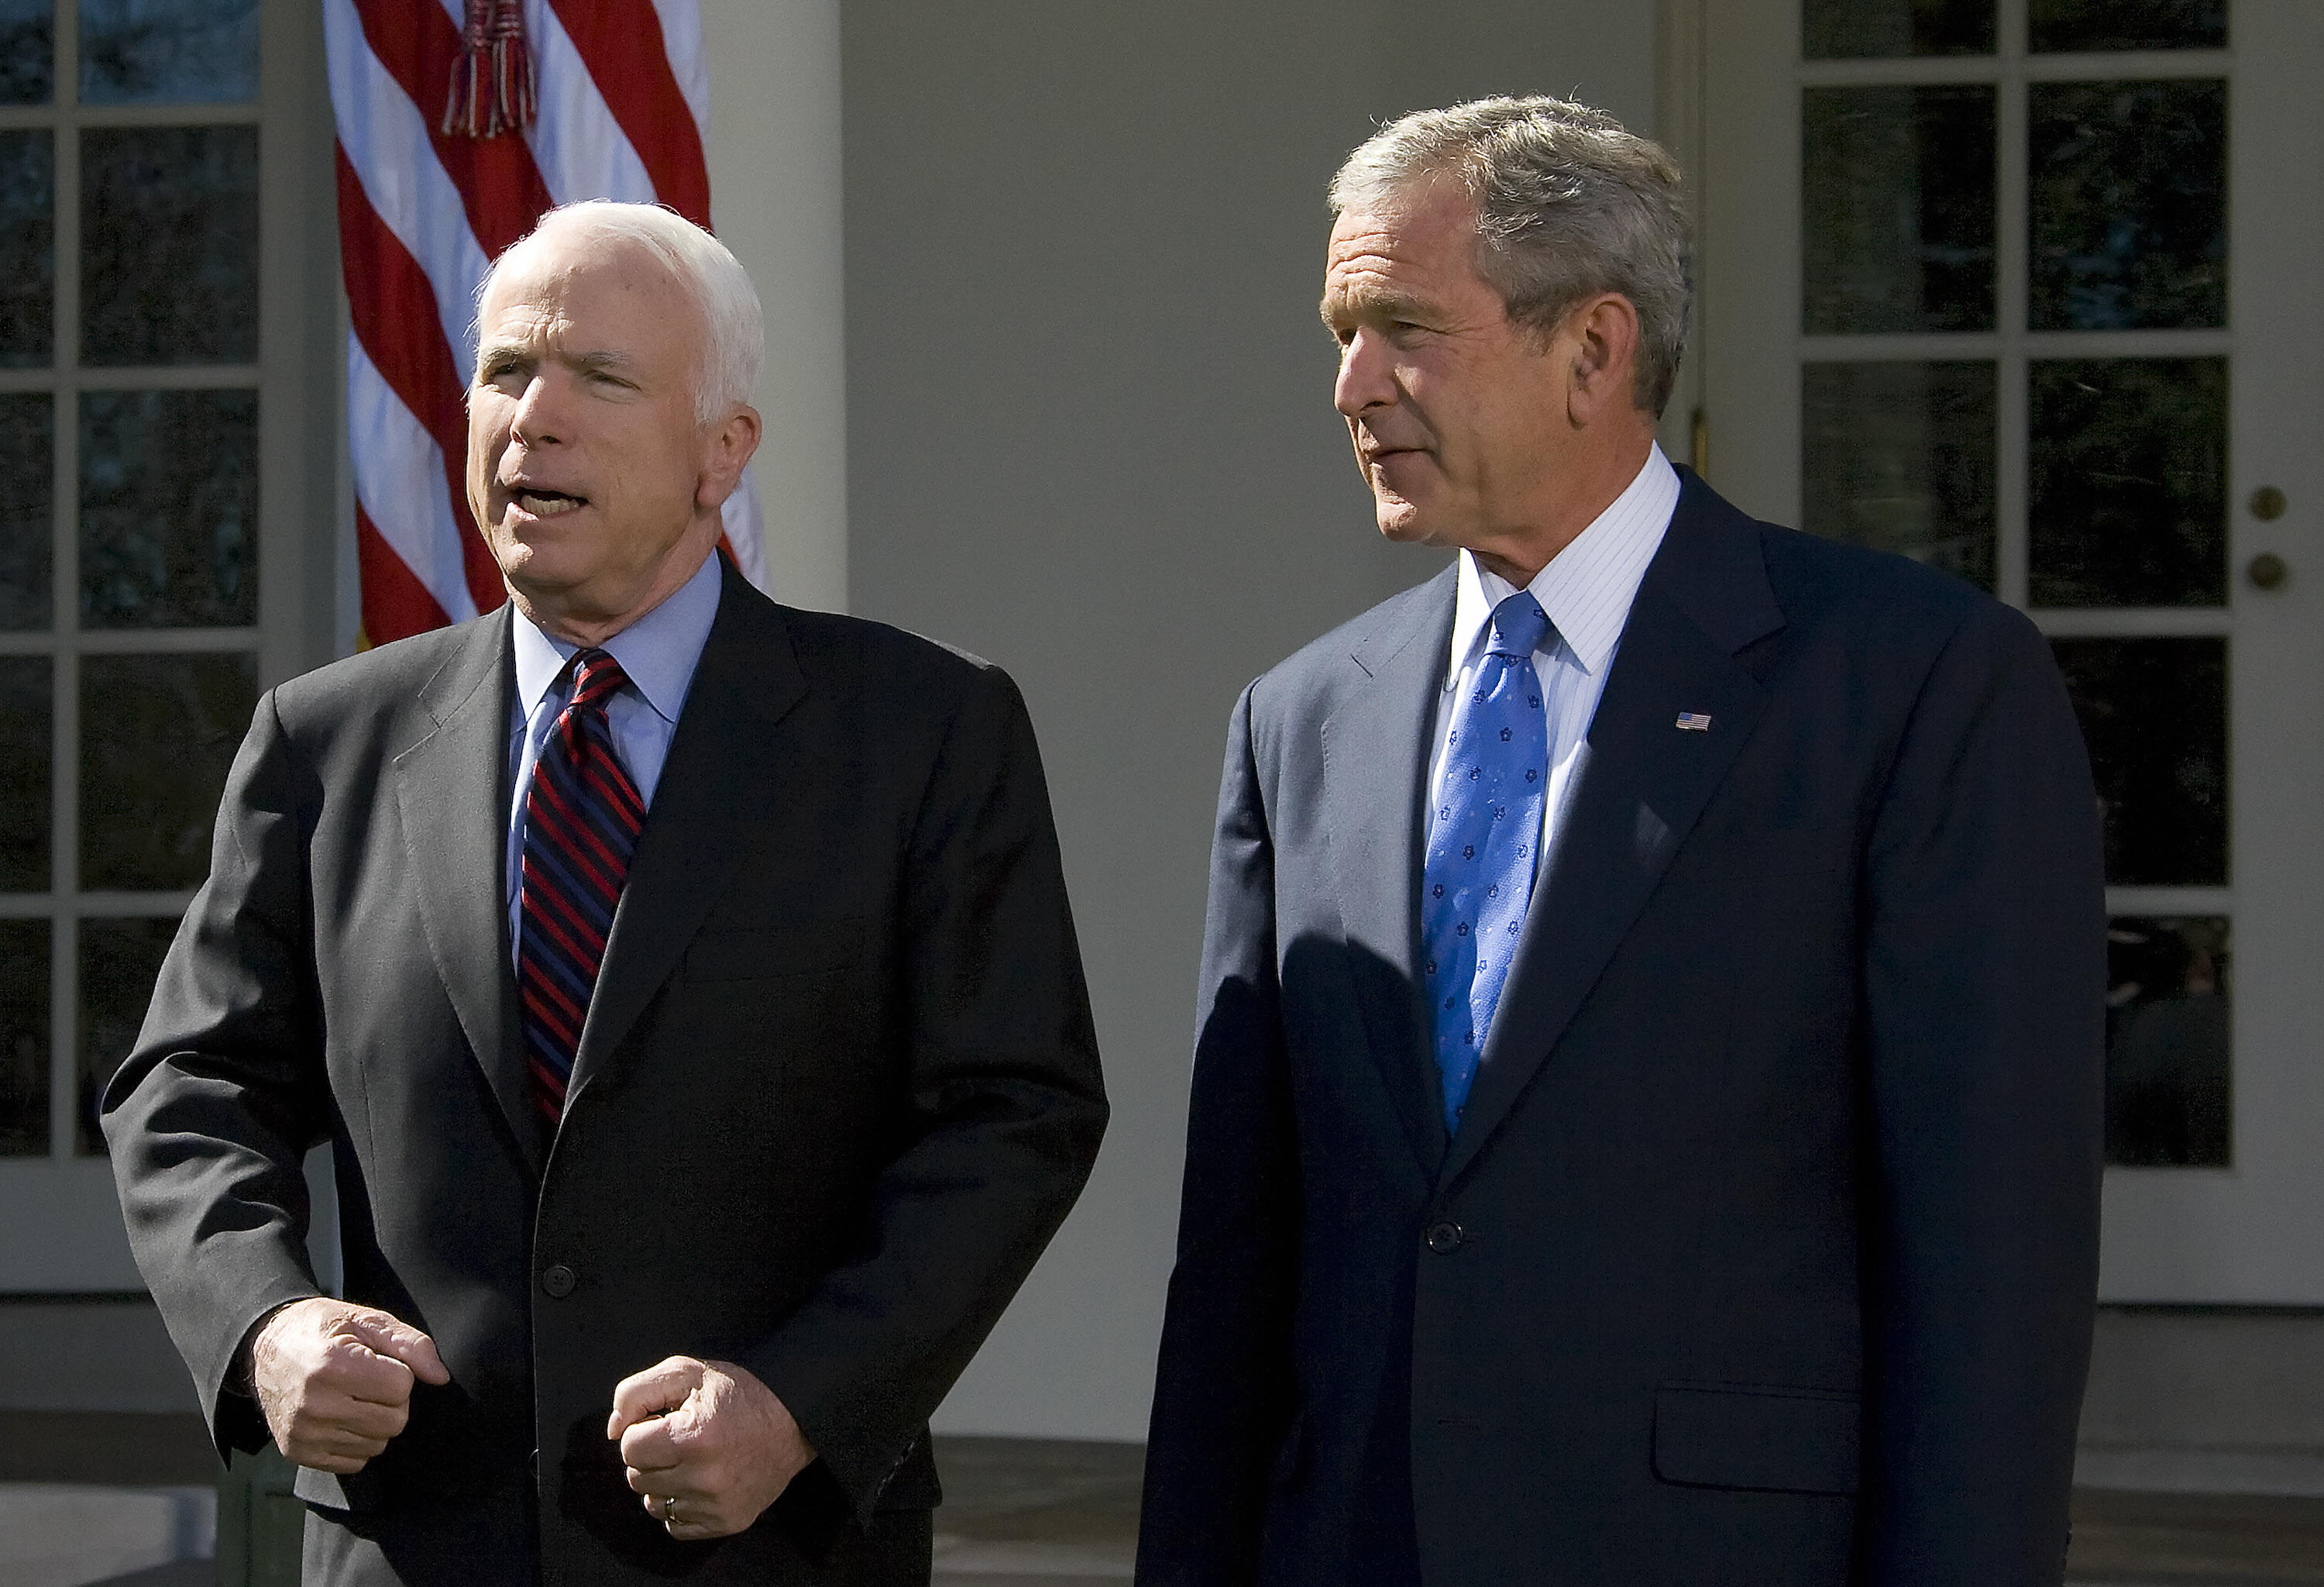 U.S. President George W. Bush, right, listens after endorsing Republican presidential candidate John McCain in the Rose Garden of the White House on March 5, 2008. McCain had lost to Bush for the presidency in 2000. (Jim Watson/AFP via Getty Images)